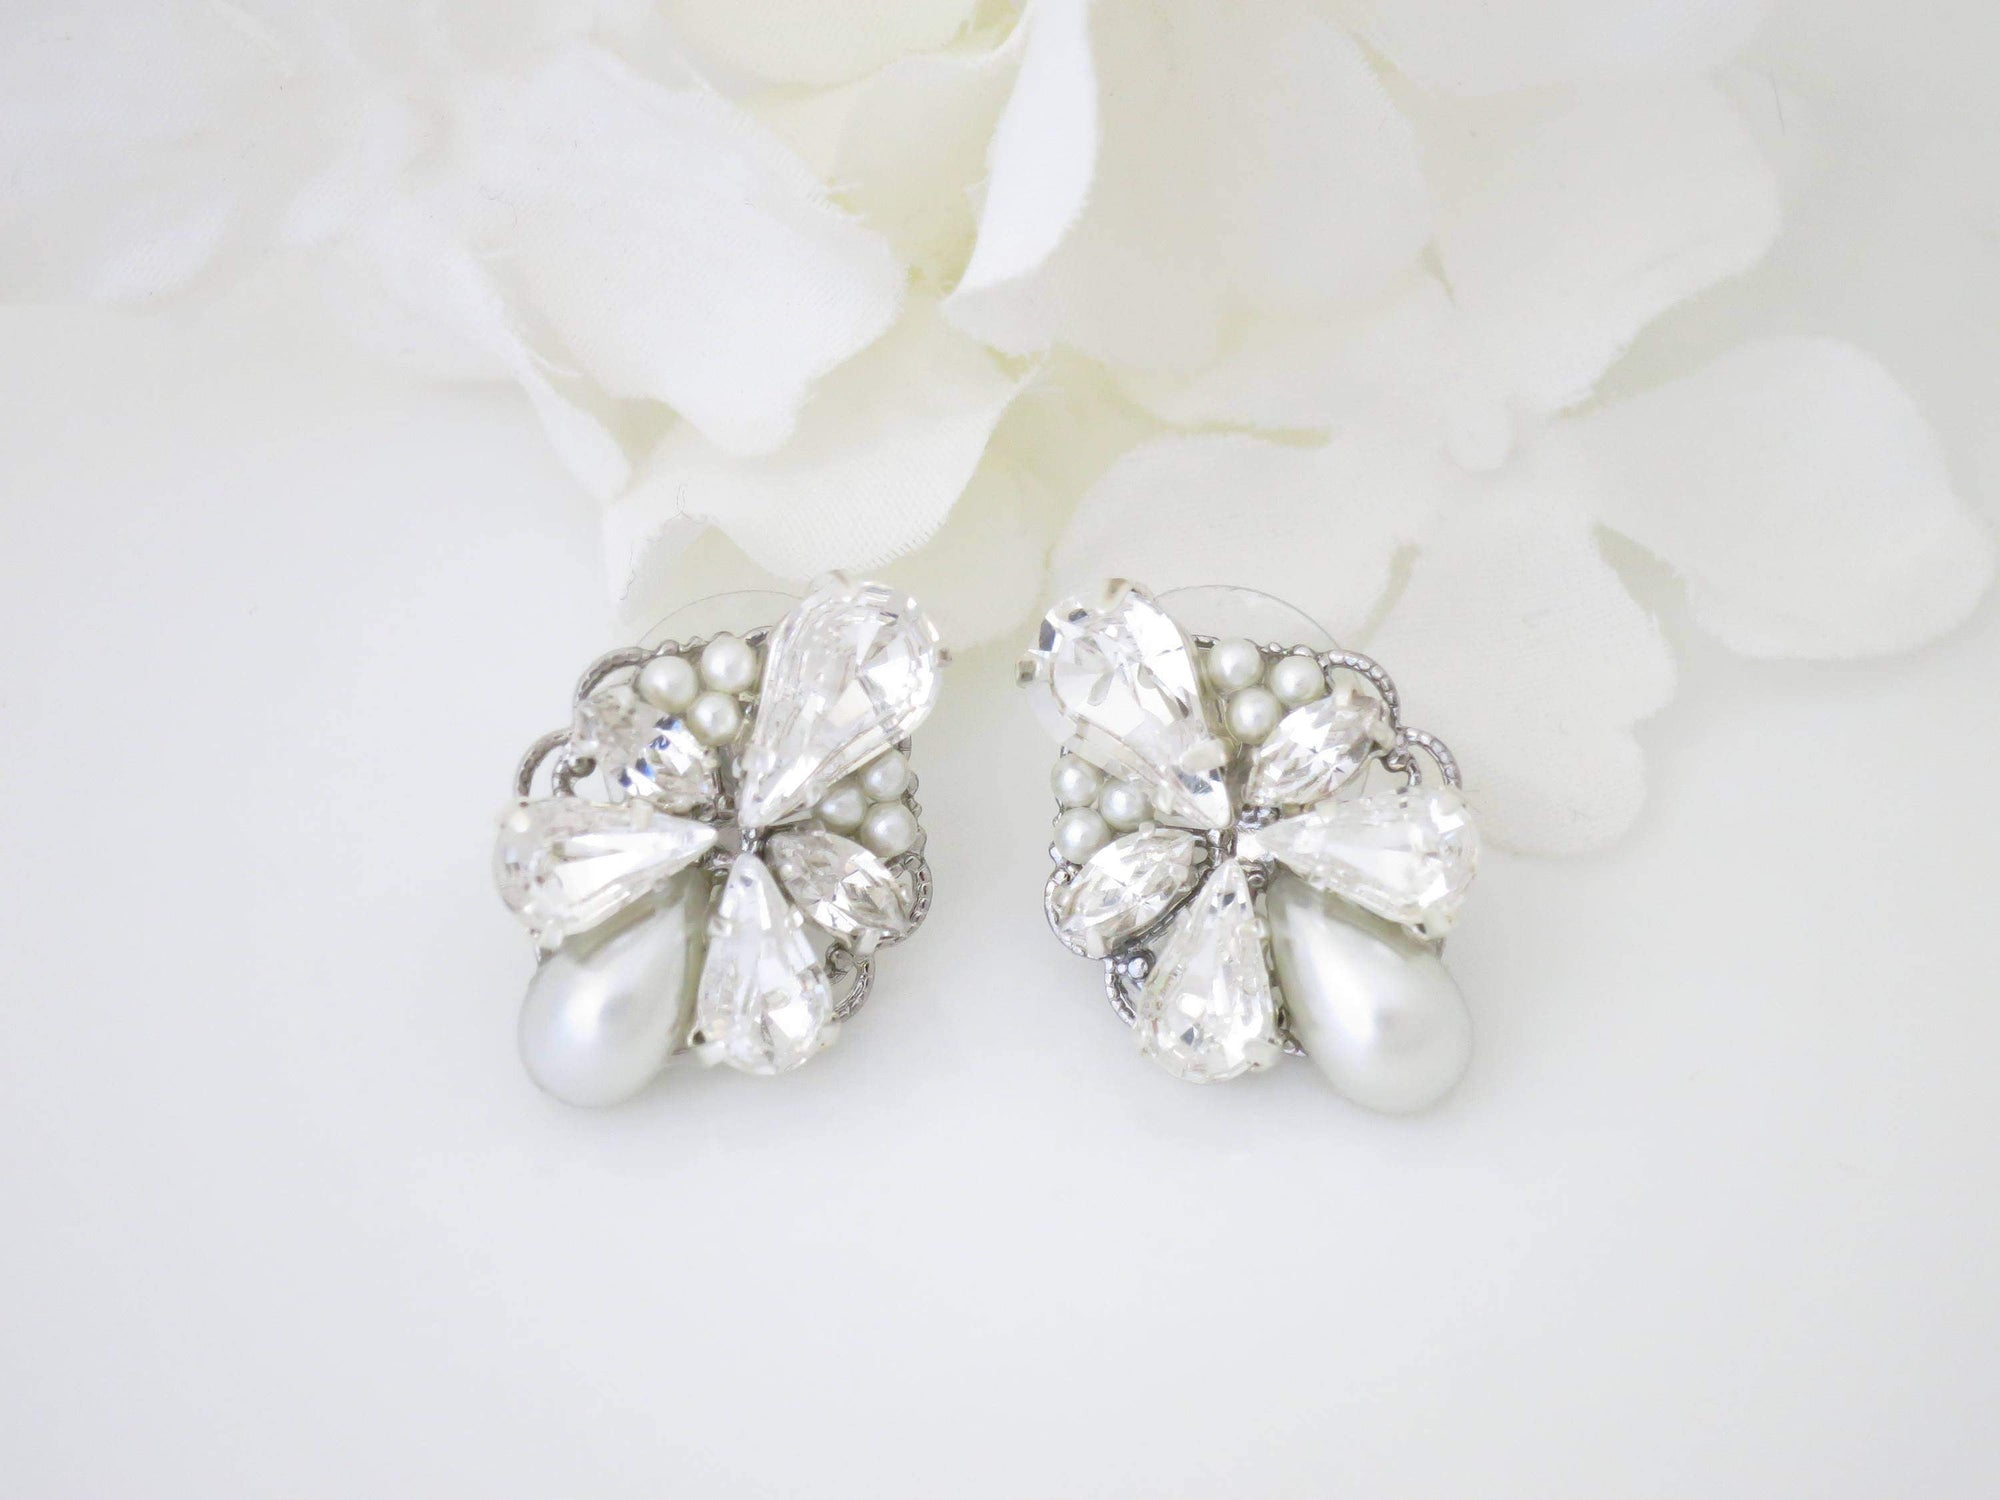 HILLARY:  Romantic Rhinestone and Pearl Cluster Earrings - BlingBaddaBoom - Minimalist, Vintage, Modern Wedding and Bridal Jewelry